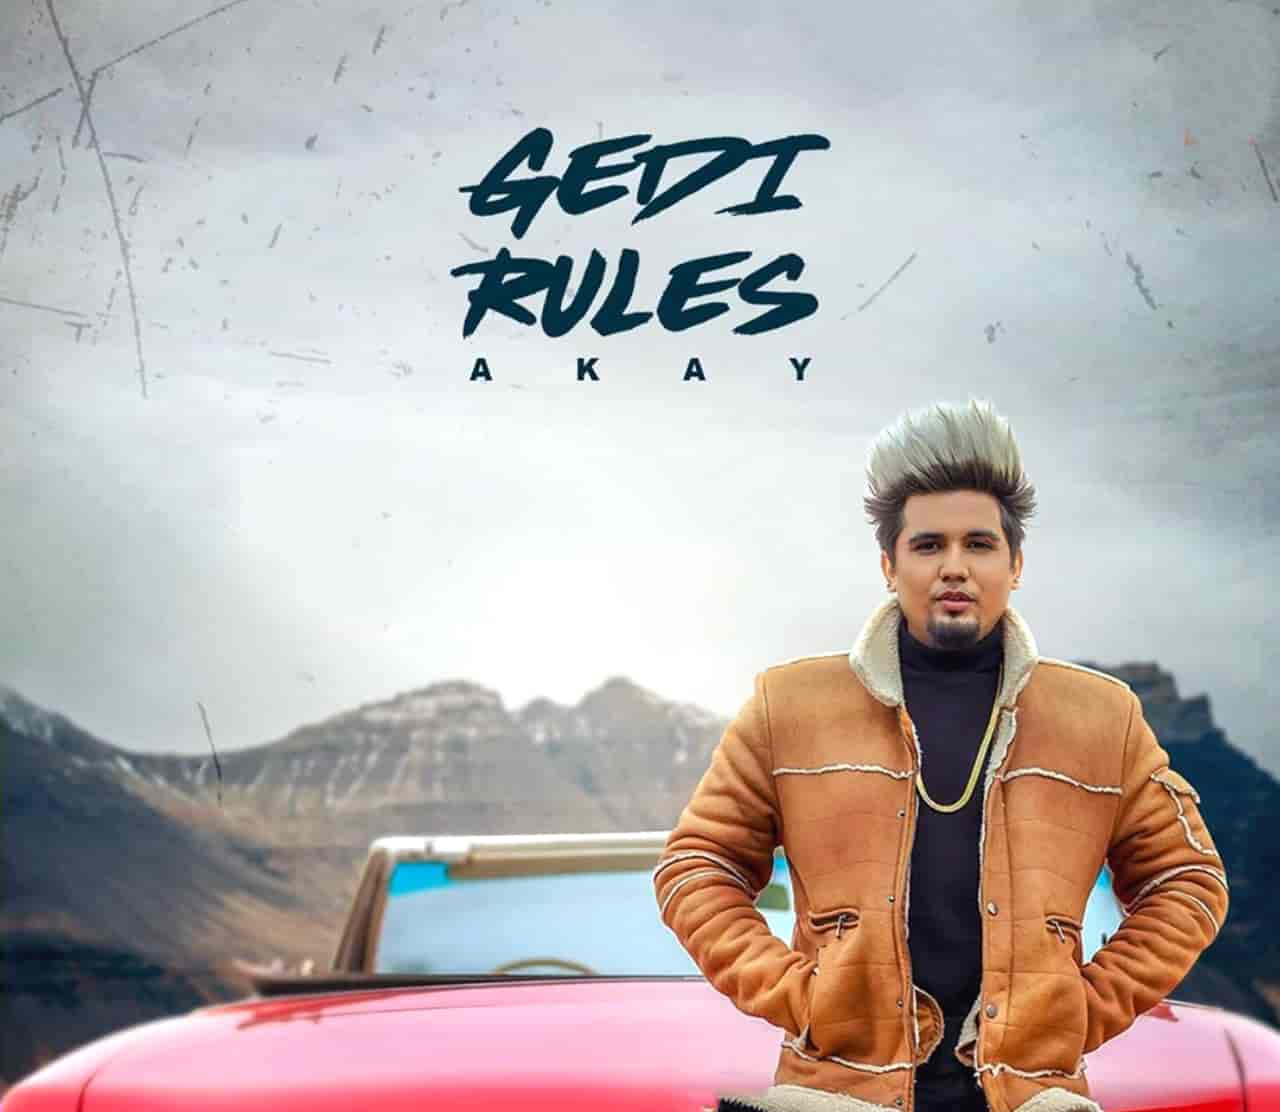 Gedi Rules Punjabi Song Image By A Kay